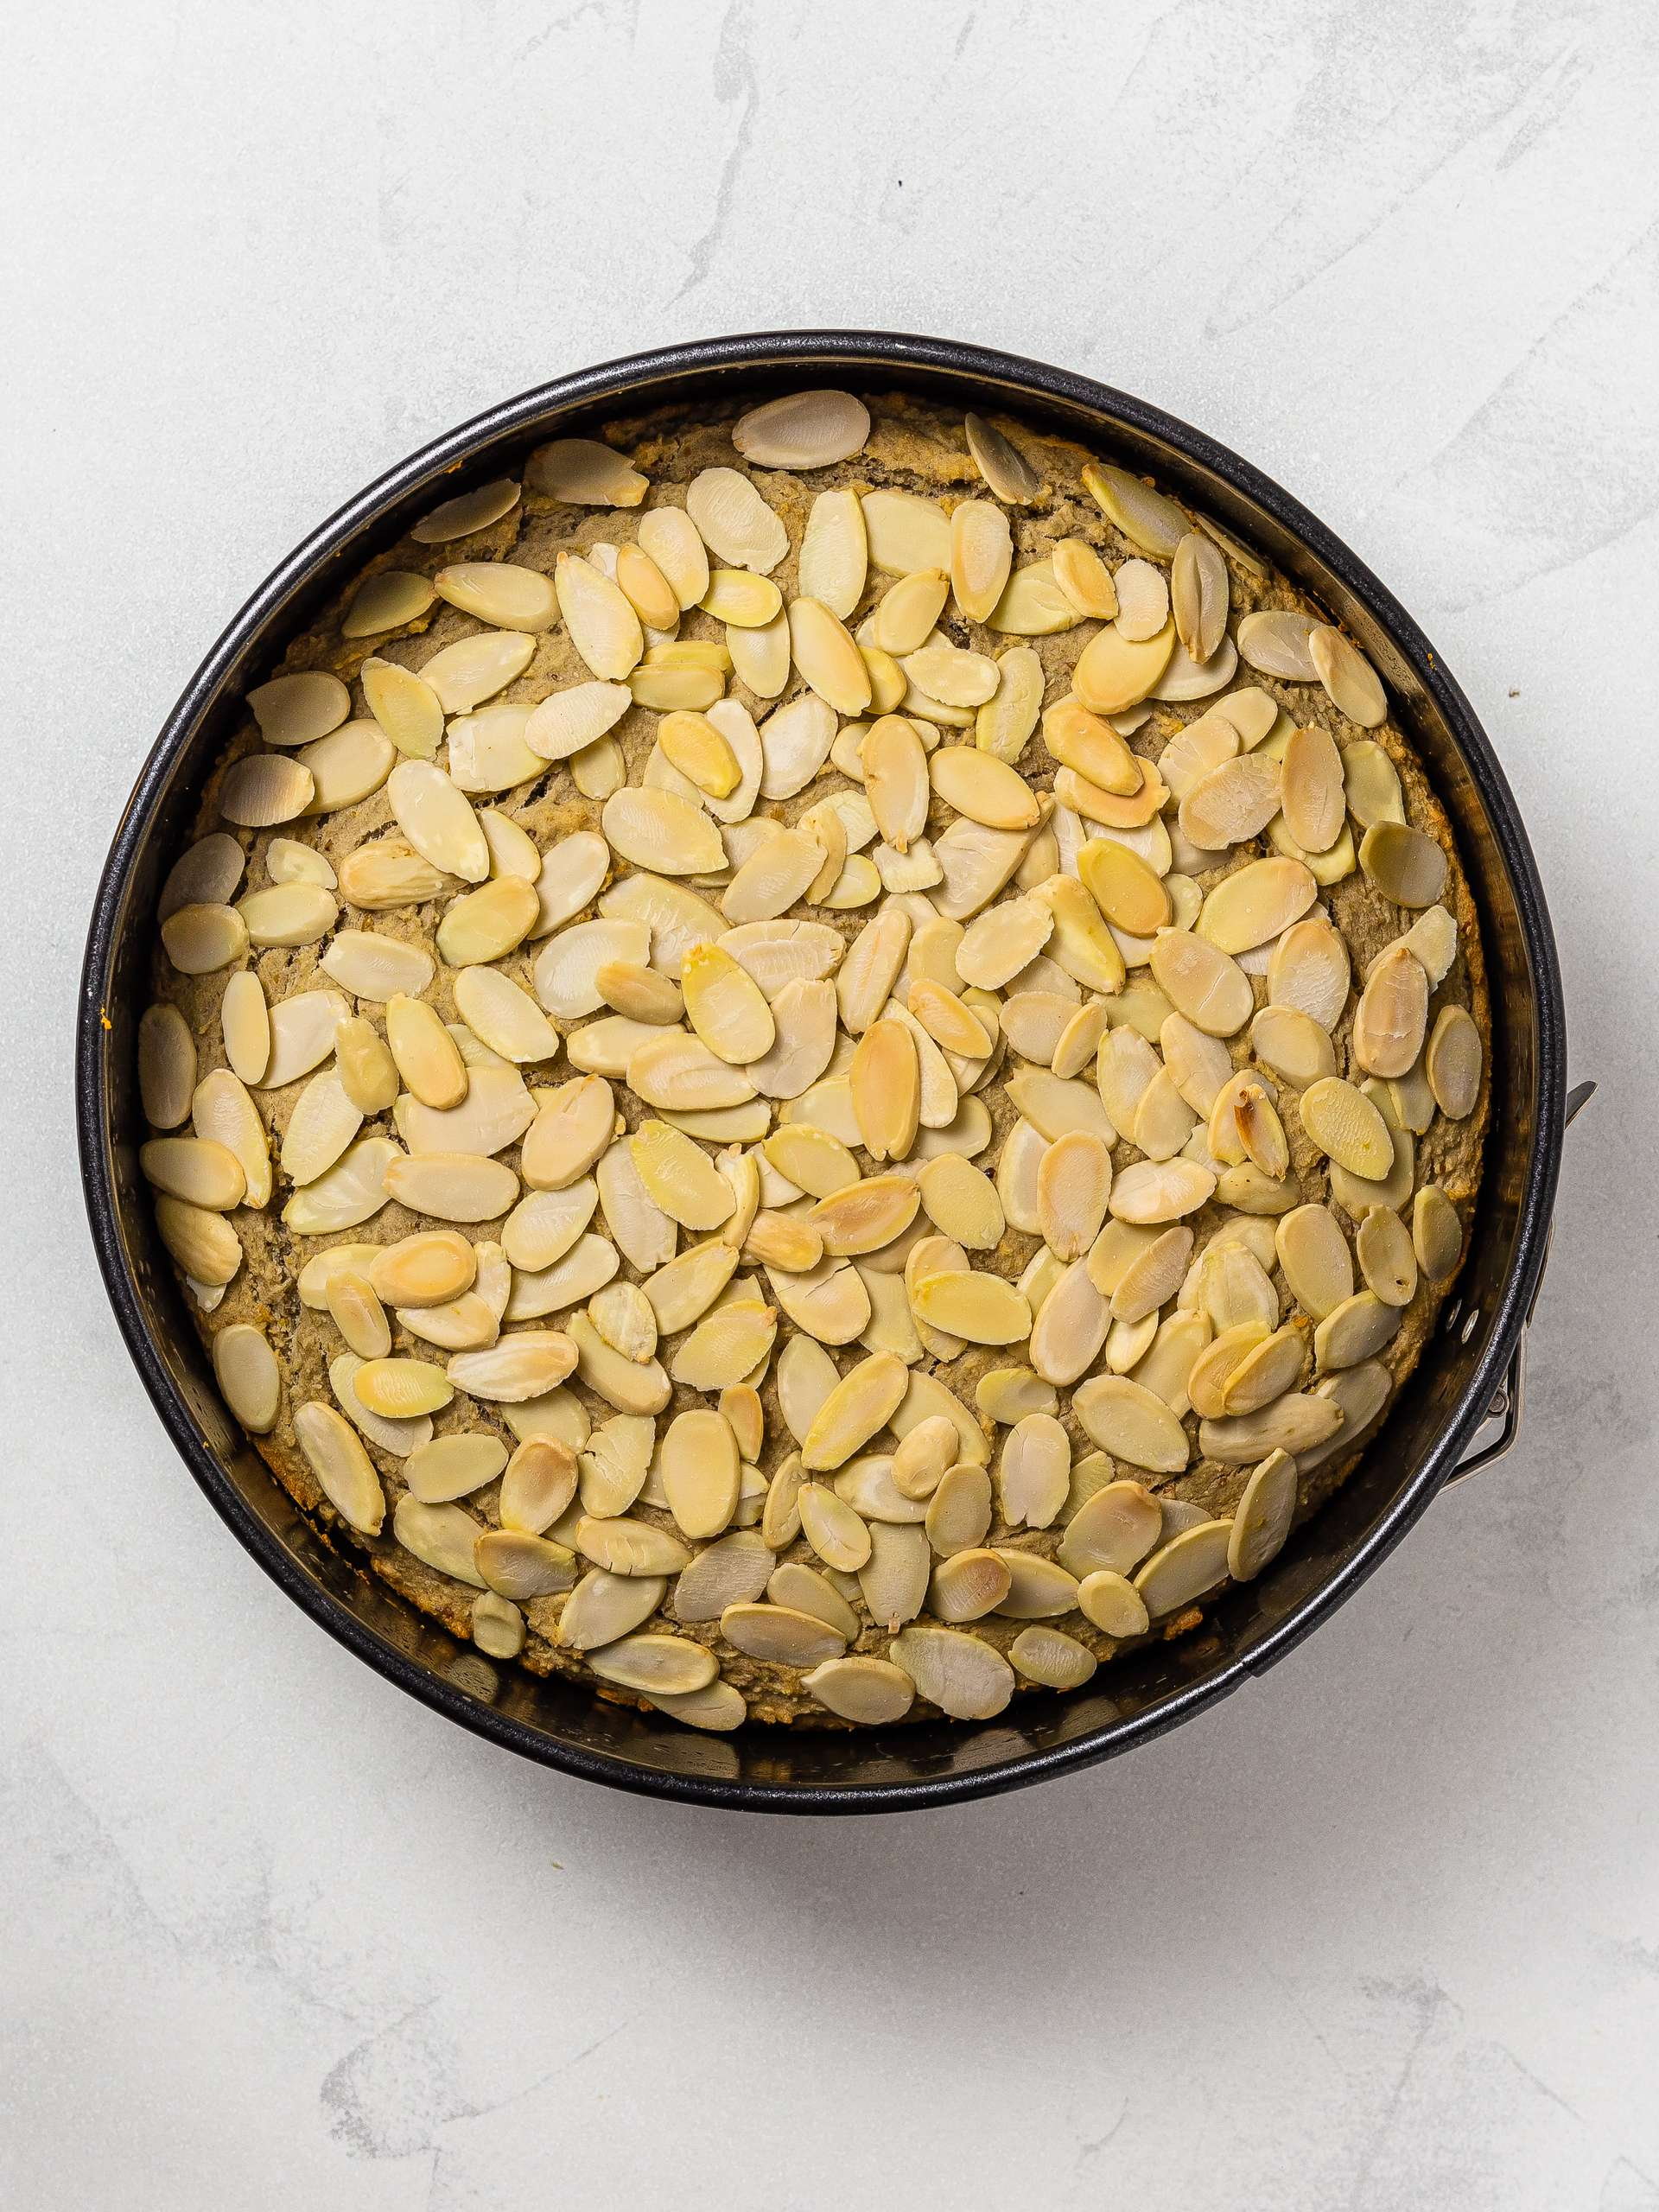 baked gluten-free almond cake in a tin